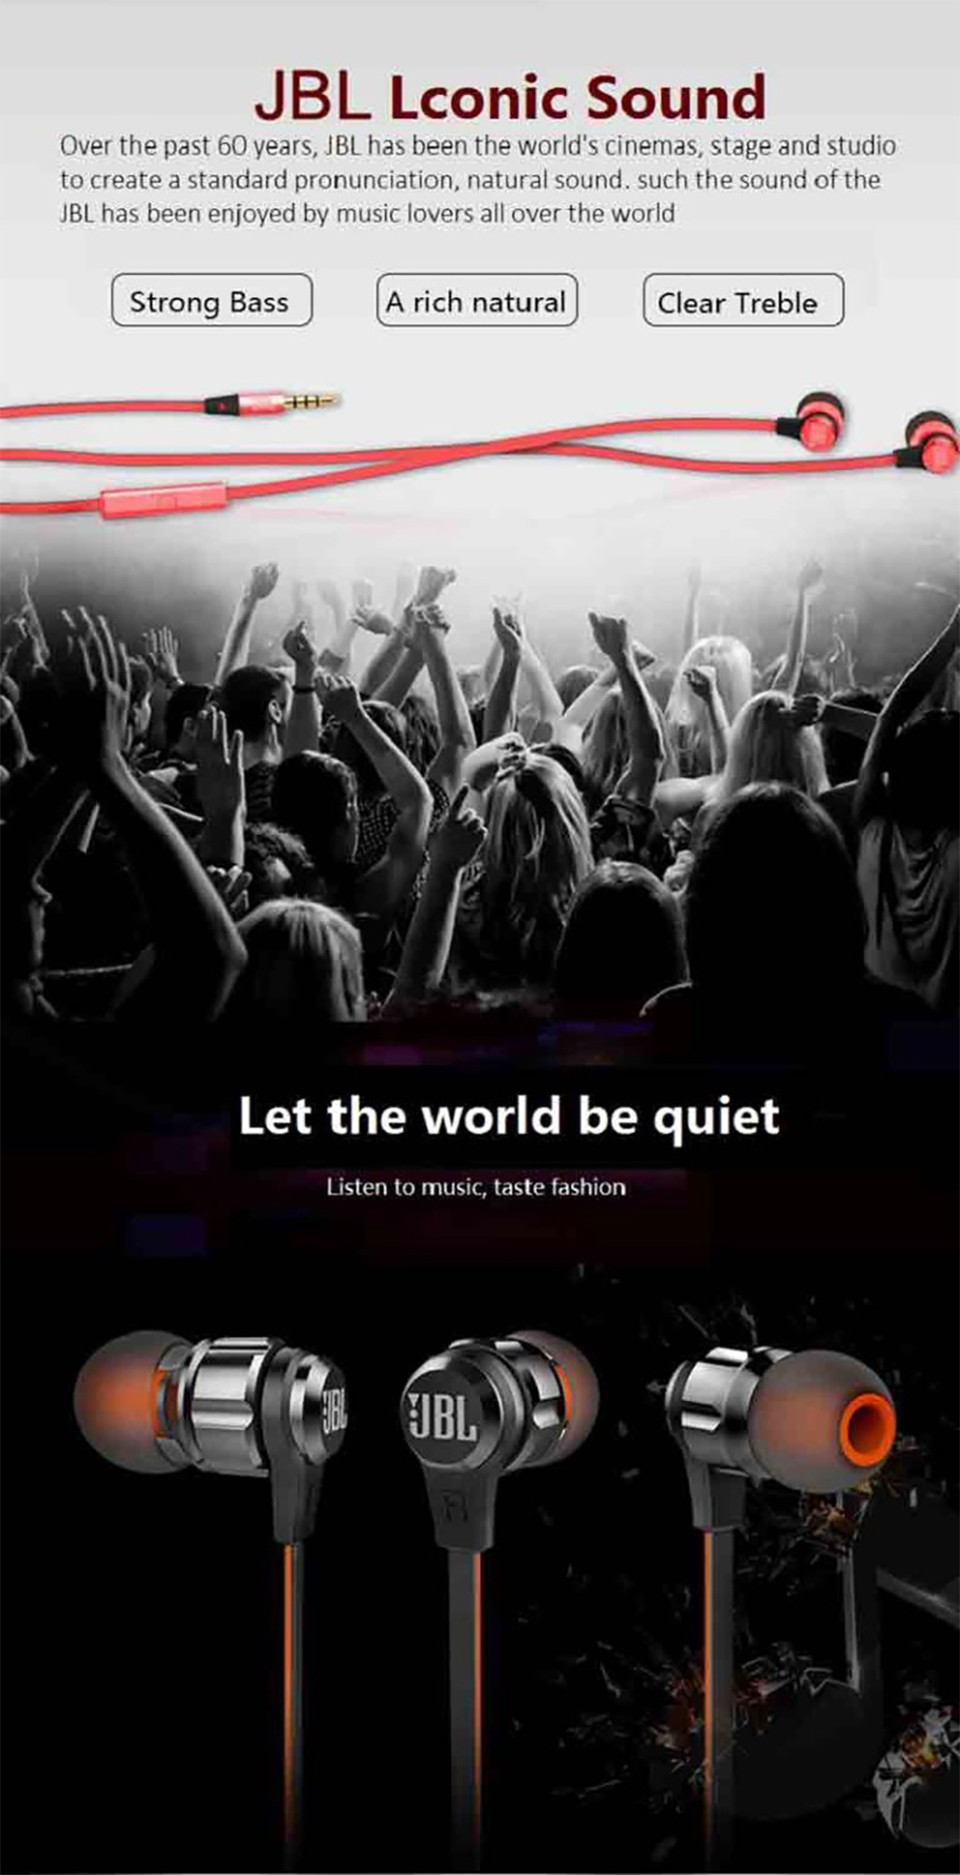 JBL T180A Stereo Earphone Running Sports Earbuds Handsfree Call with Mic Pure Deep Bass Game Music Headset for iPhone Android